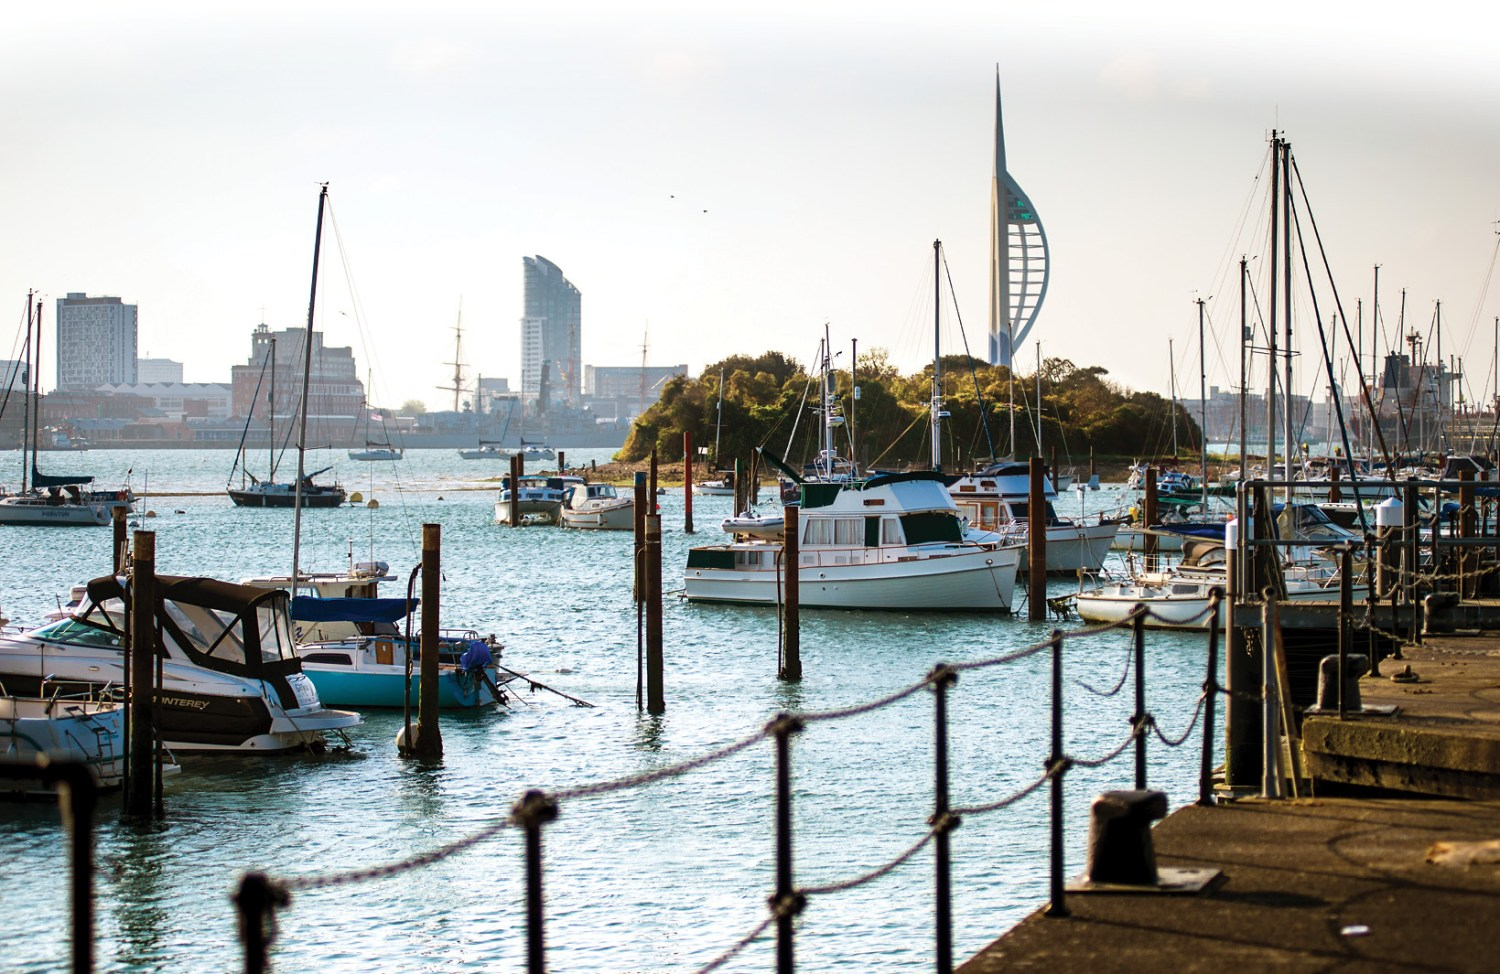 above & below Situated in Portsmouth Harbour, the excavation site could be reached via a narrow causeway exposed every day as the tide receded.